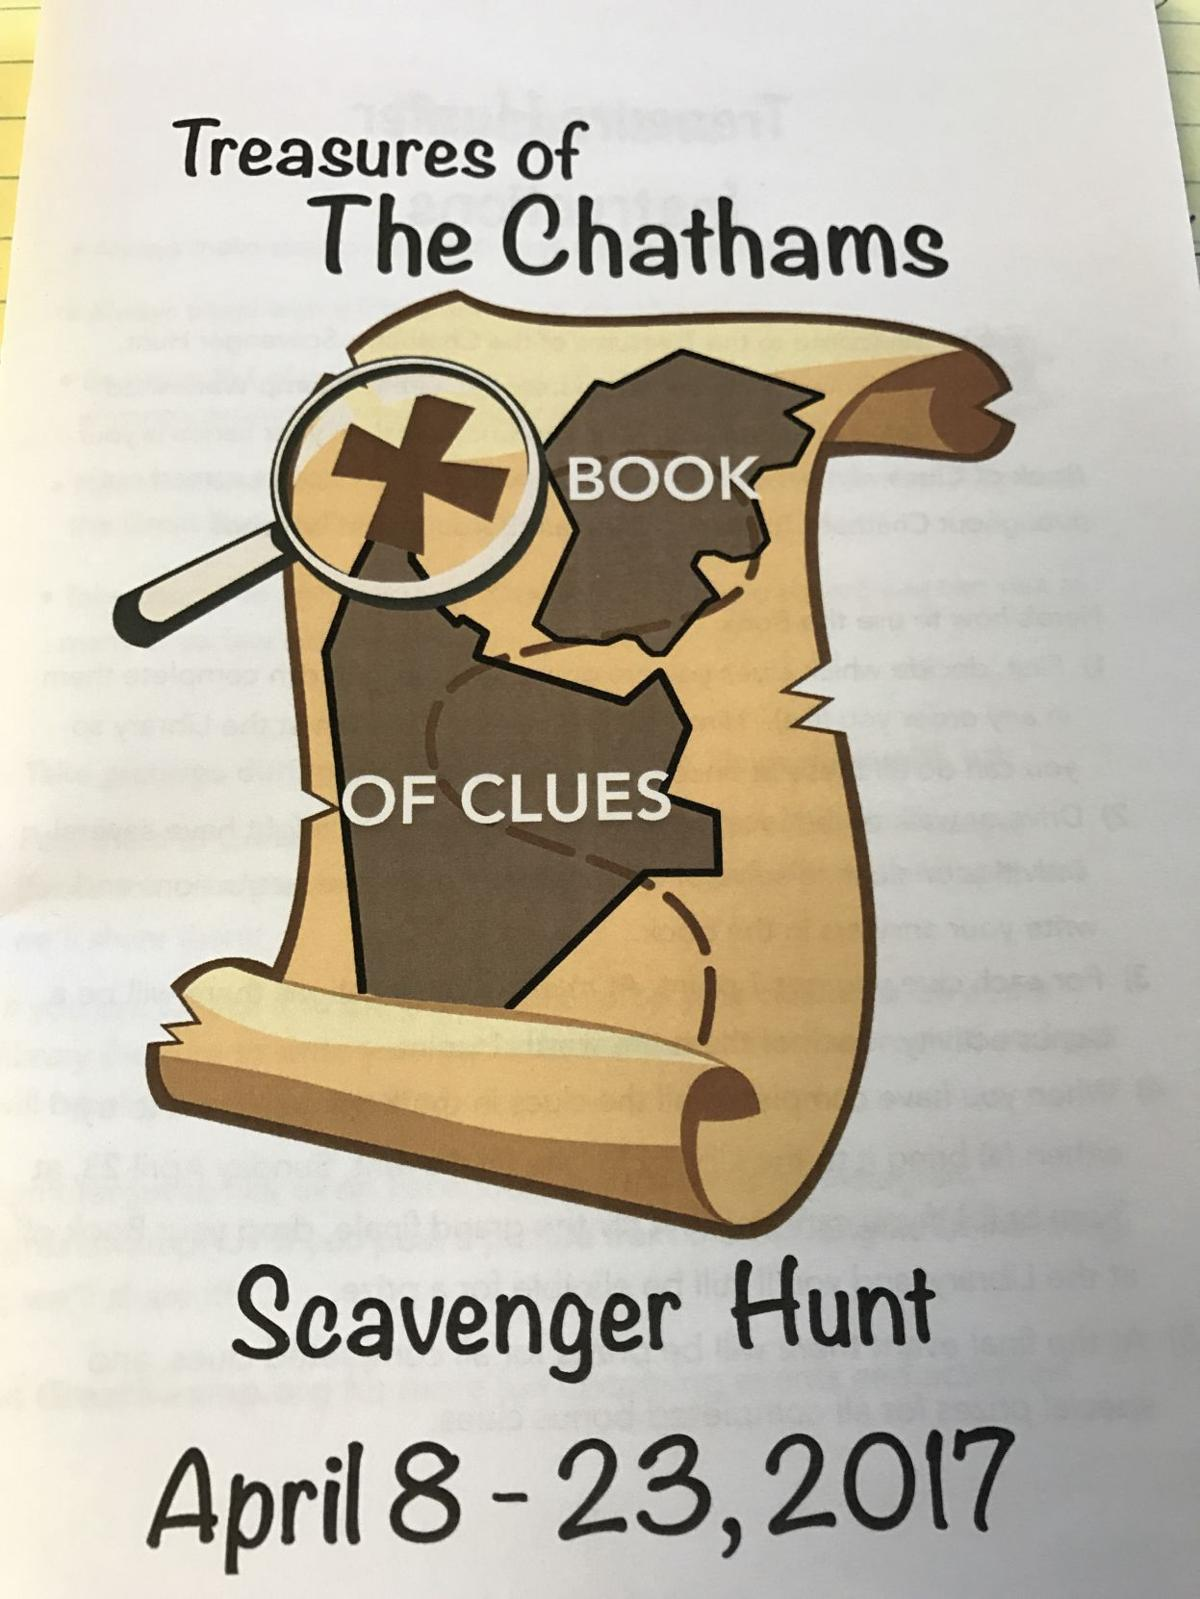 'Treasures of the Chathams Scavenger Hunt'